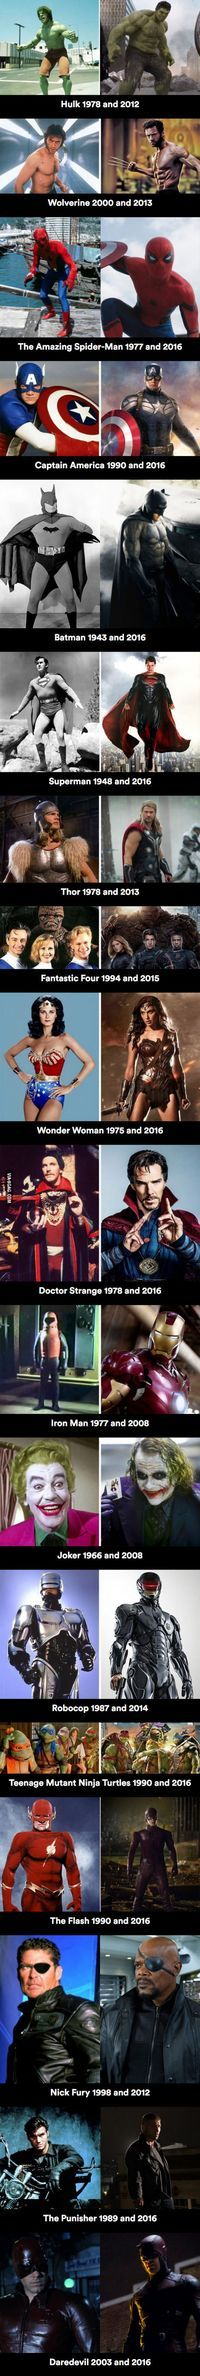 On-screen superheroes then and now